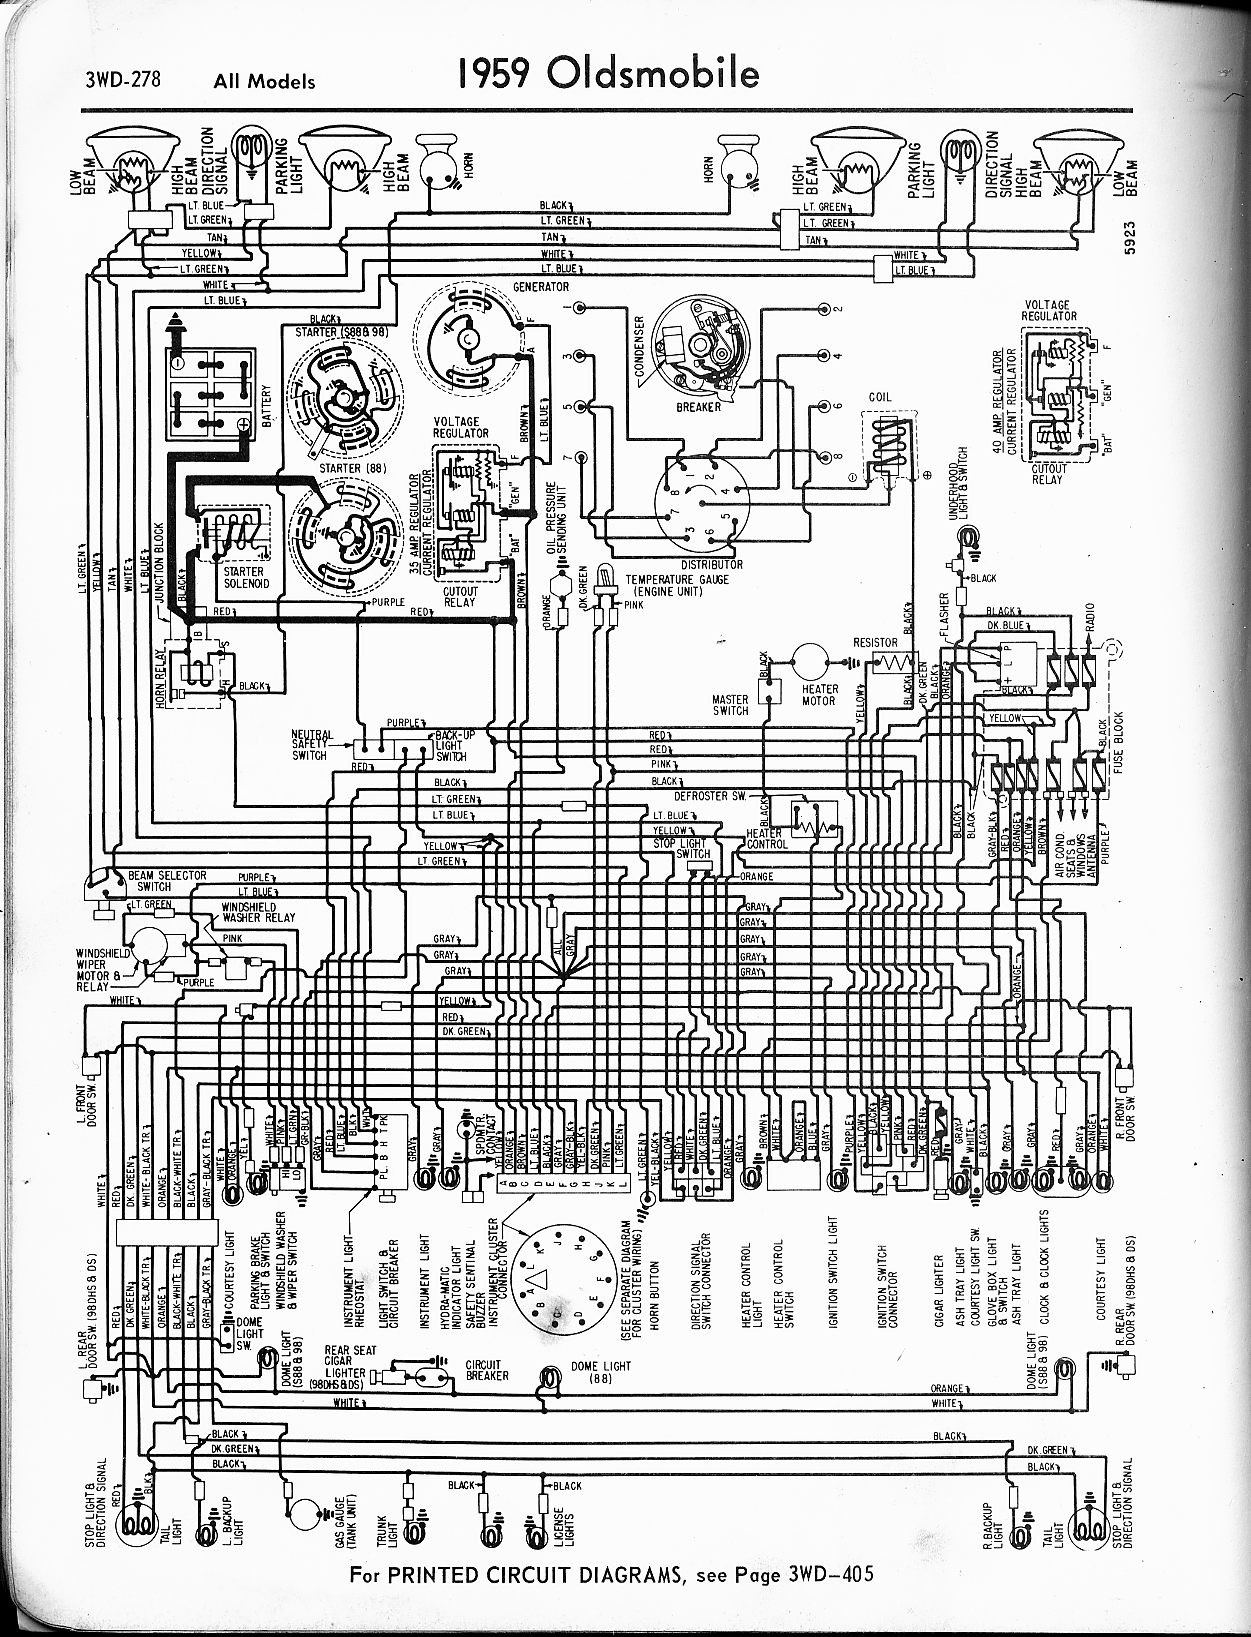 alero wiring diagram wiring diagrams 1971 chevelle wiring diagram pdf repair guides